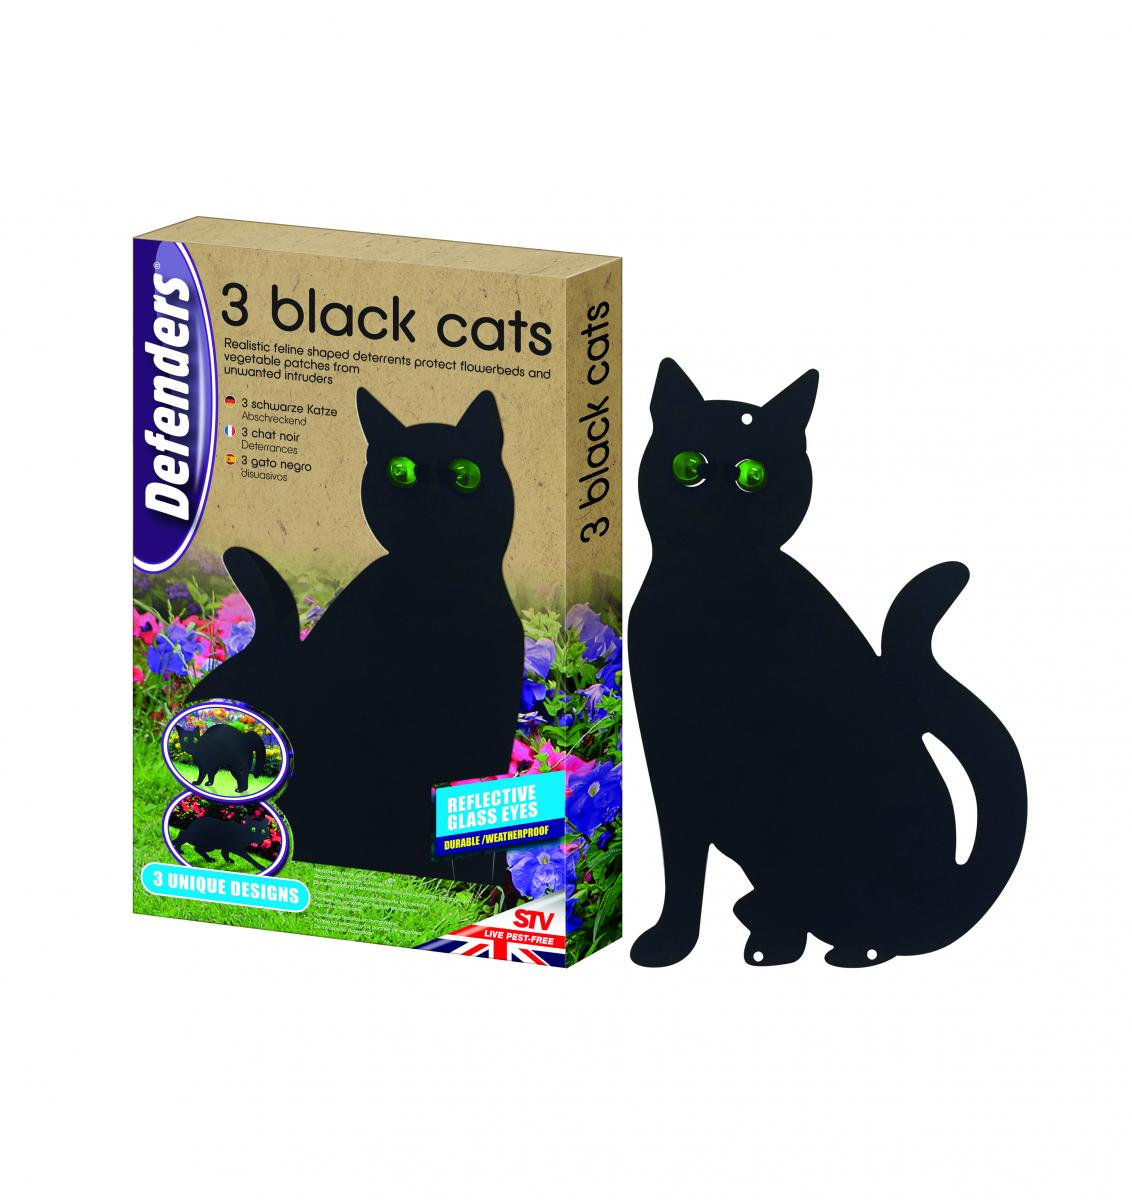 Three Black Cats - NEW – Now Only £9.00